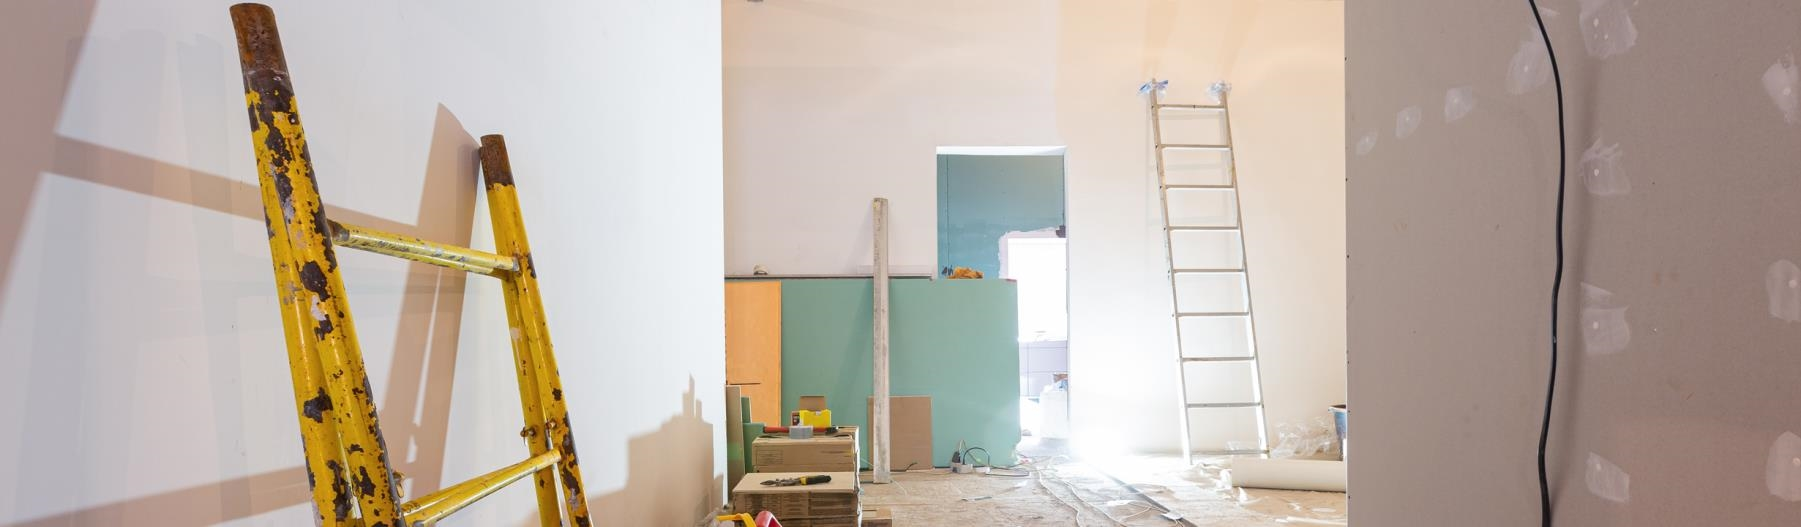 Image of a home under construction.